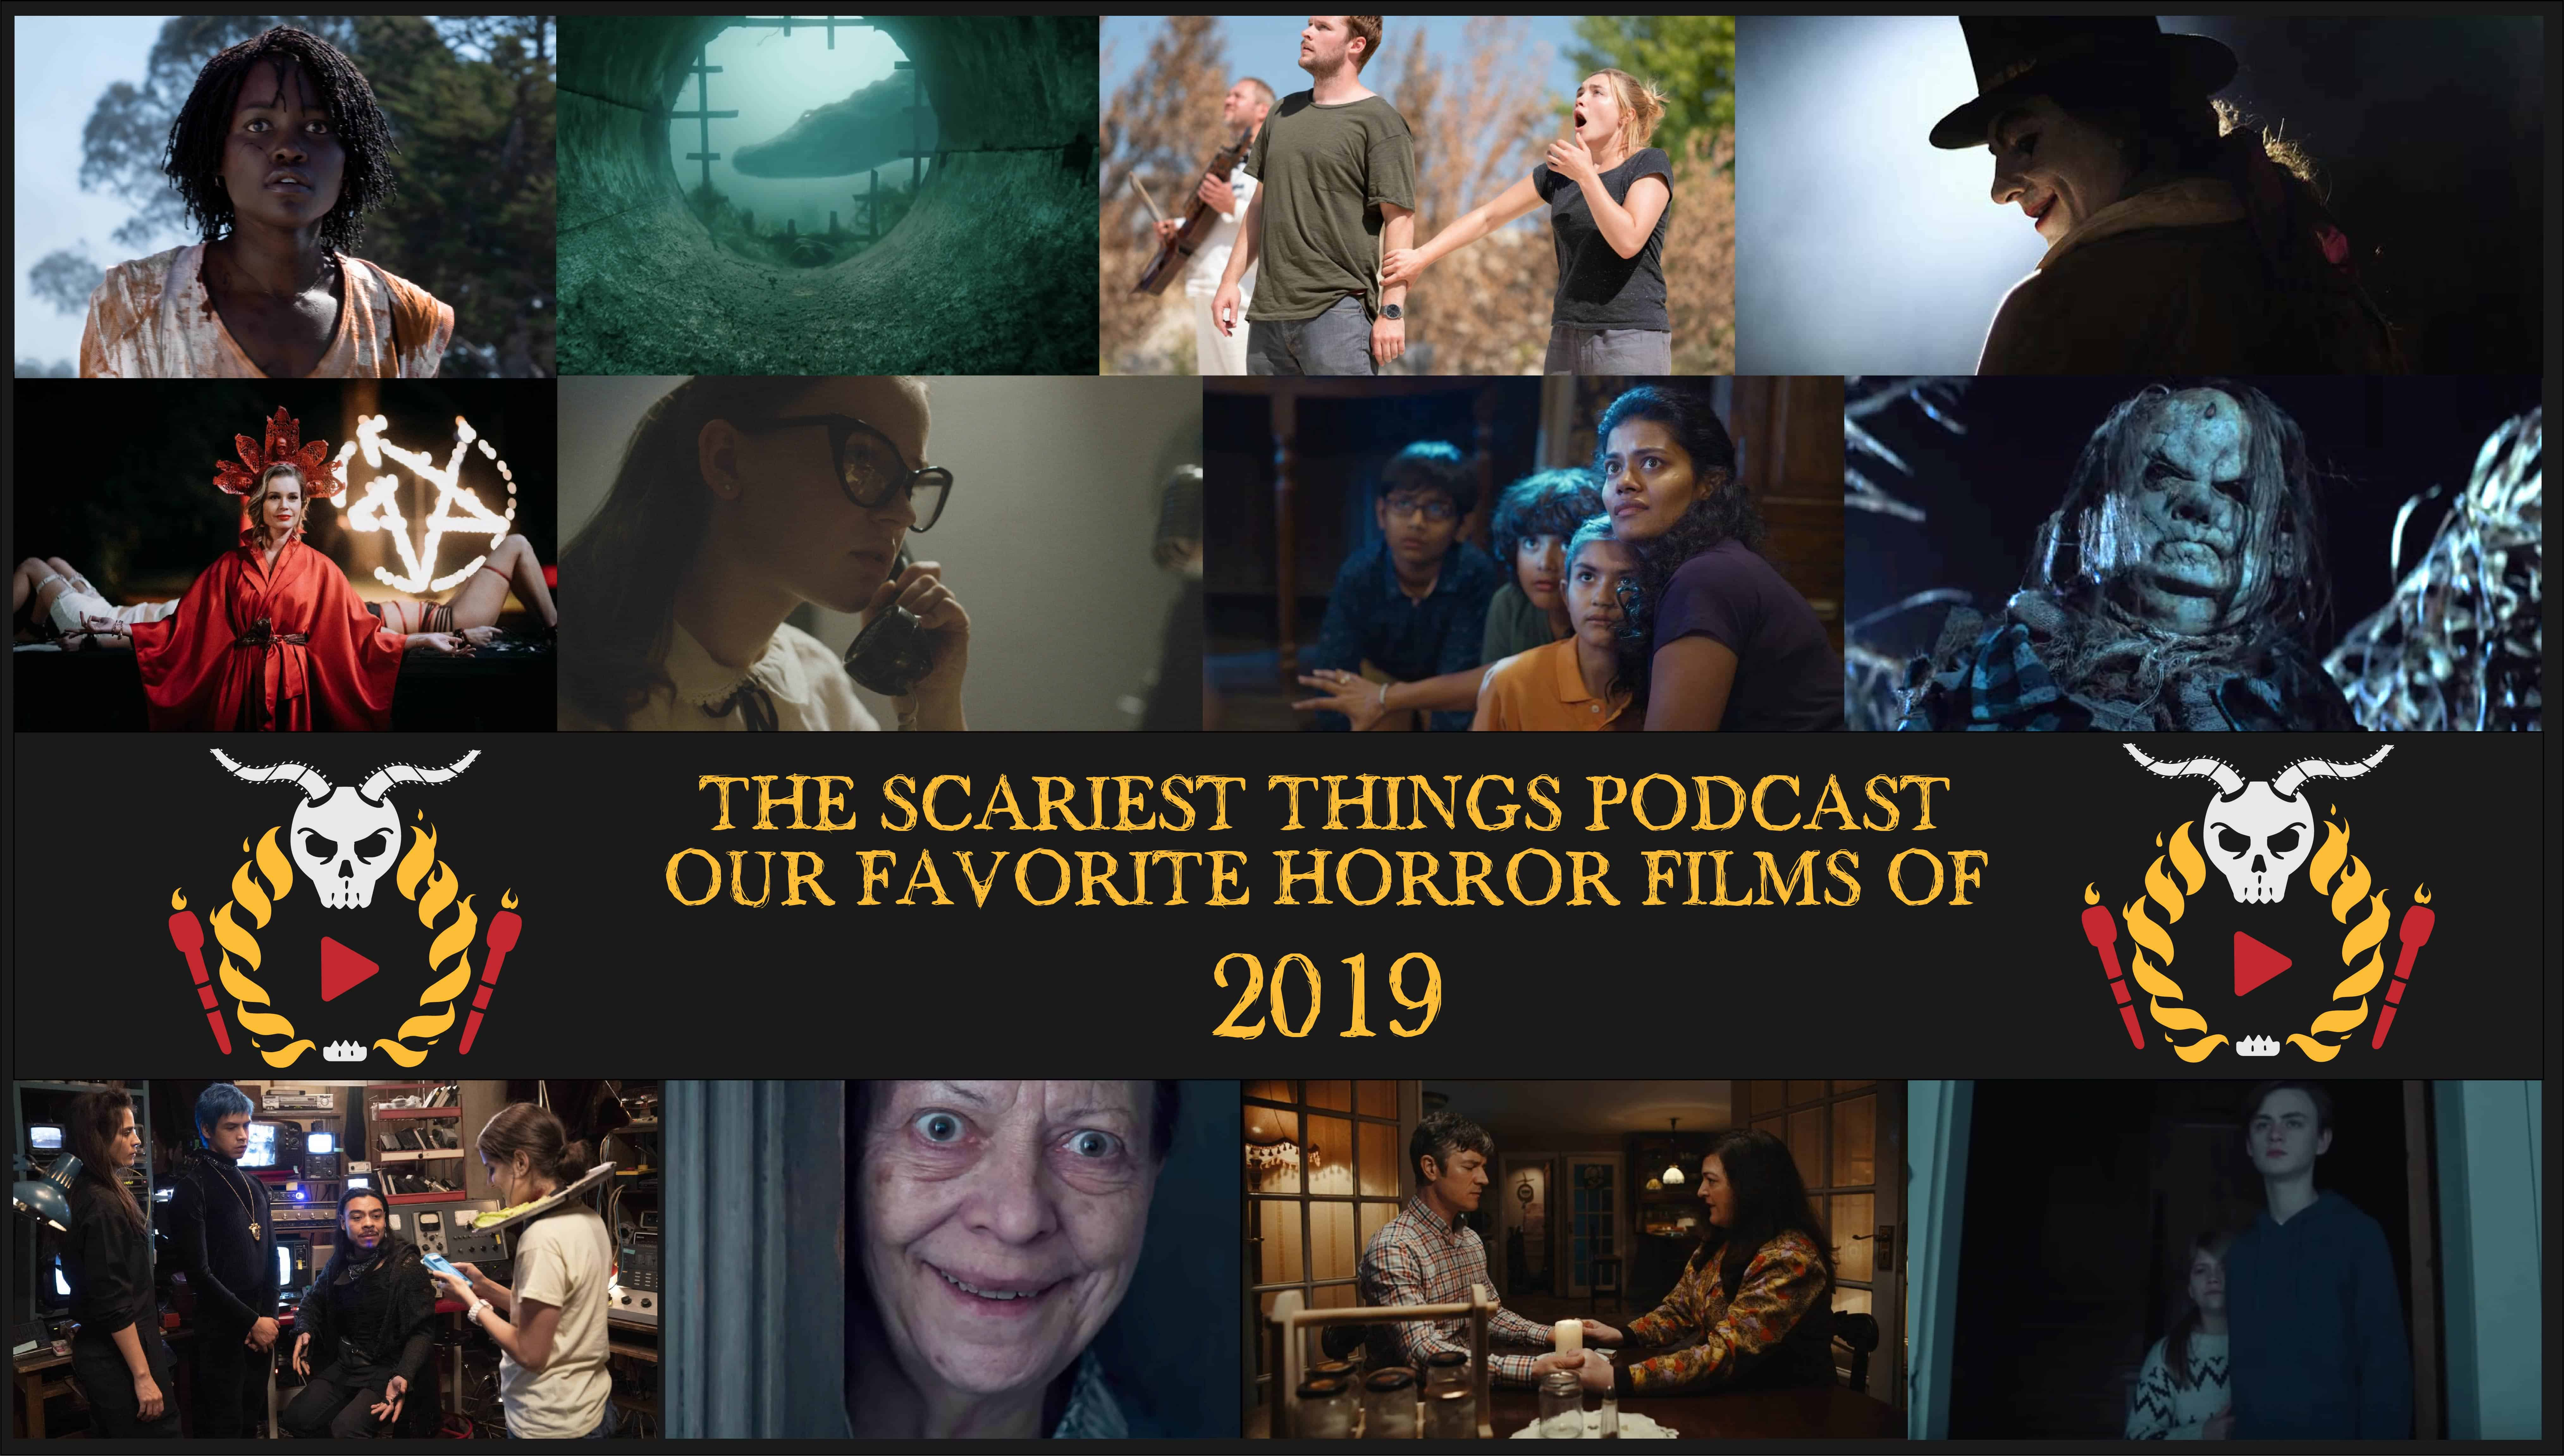 The Scariest Things Podcast Episode LXXXVI: The Best Horror Movies of 2019